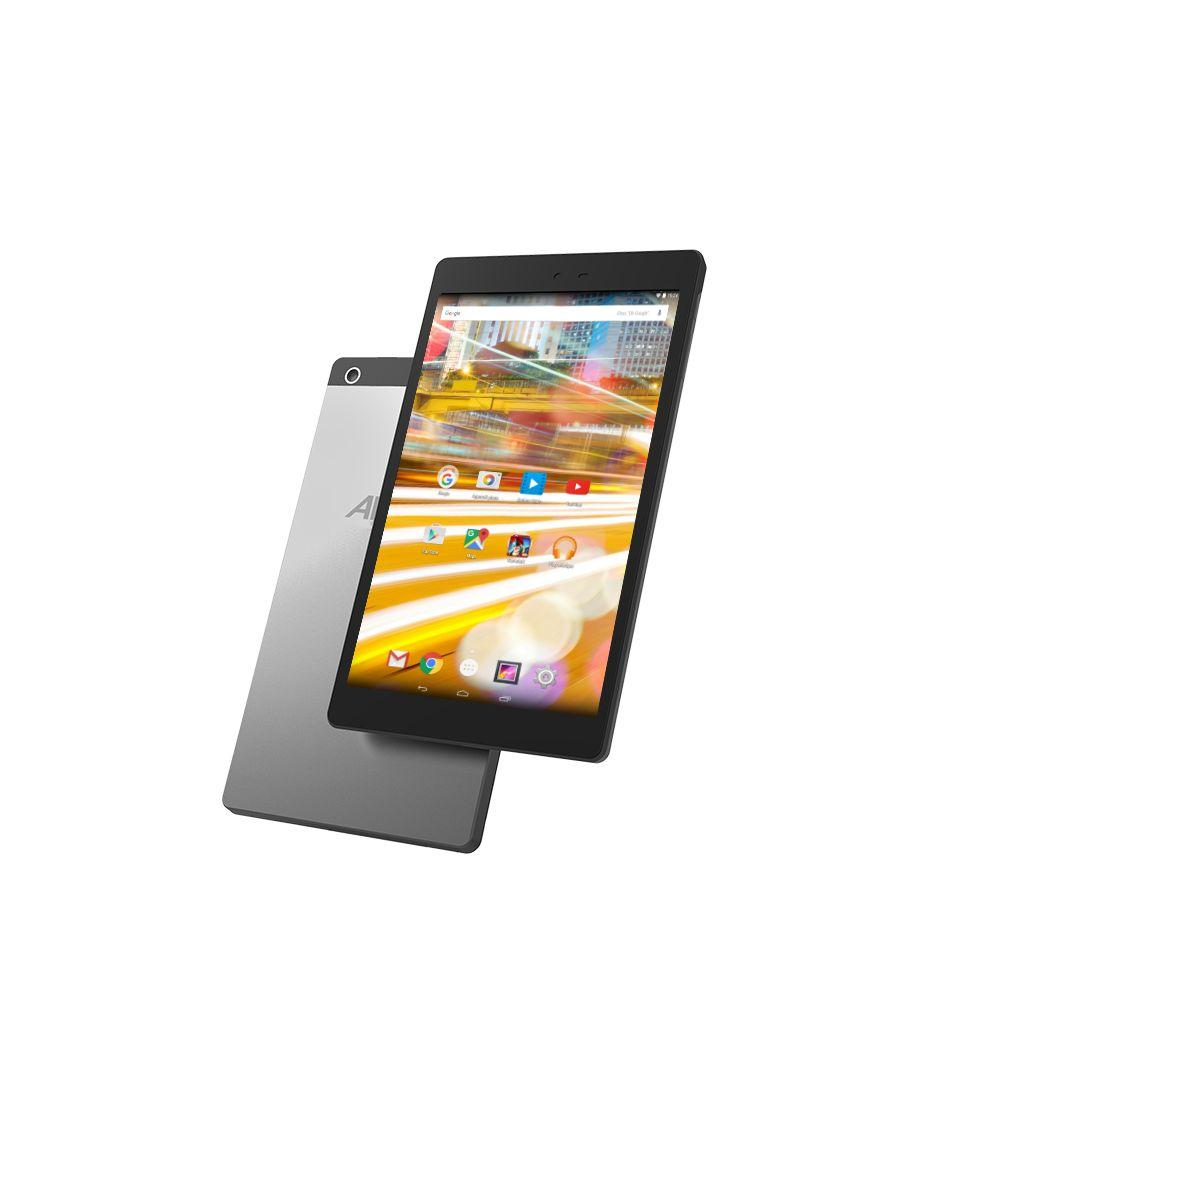 Tablette android archos 80 oxygen 32go (photo)